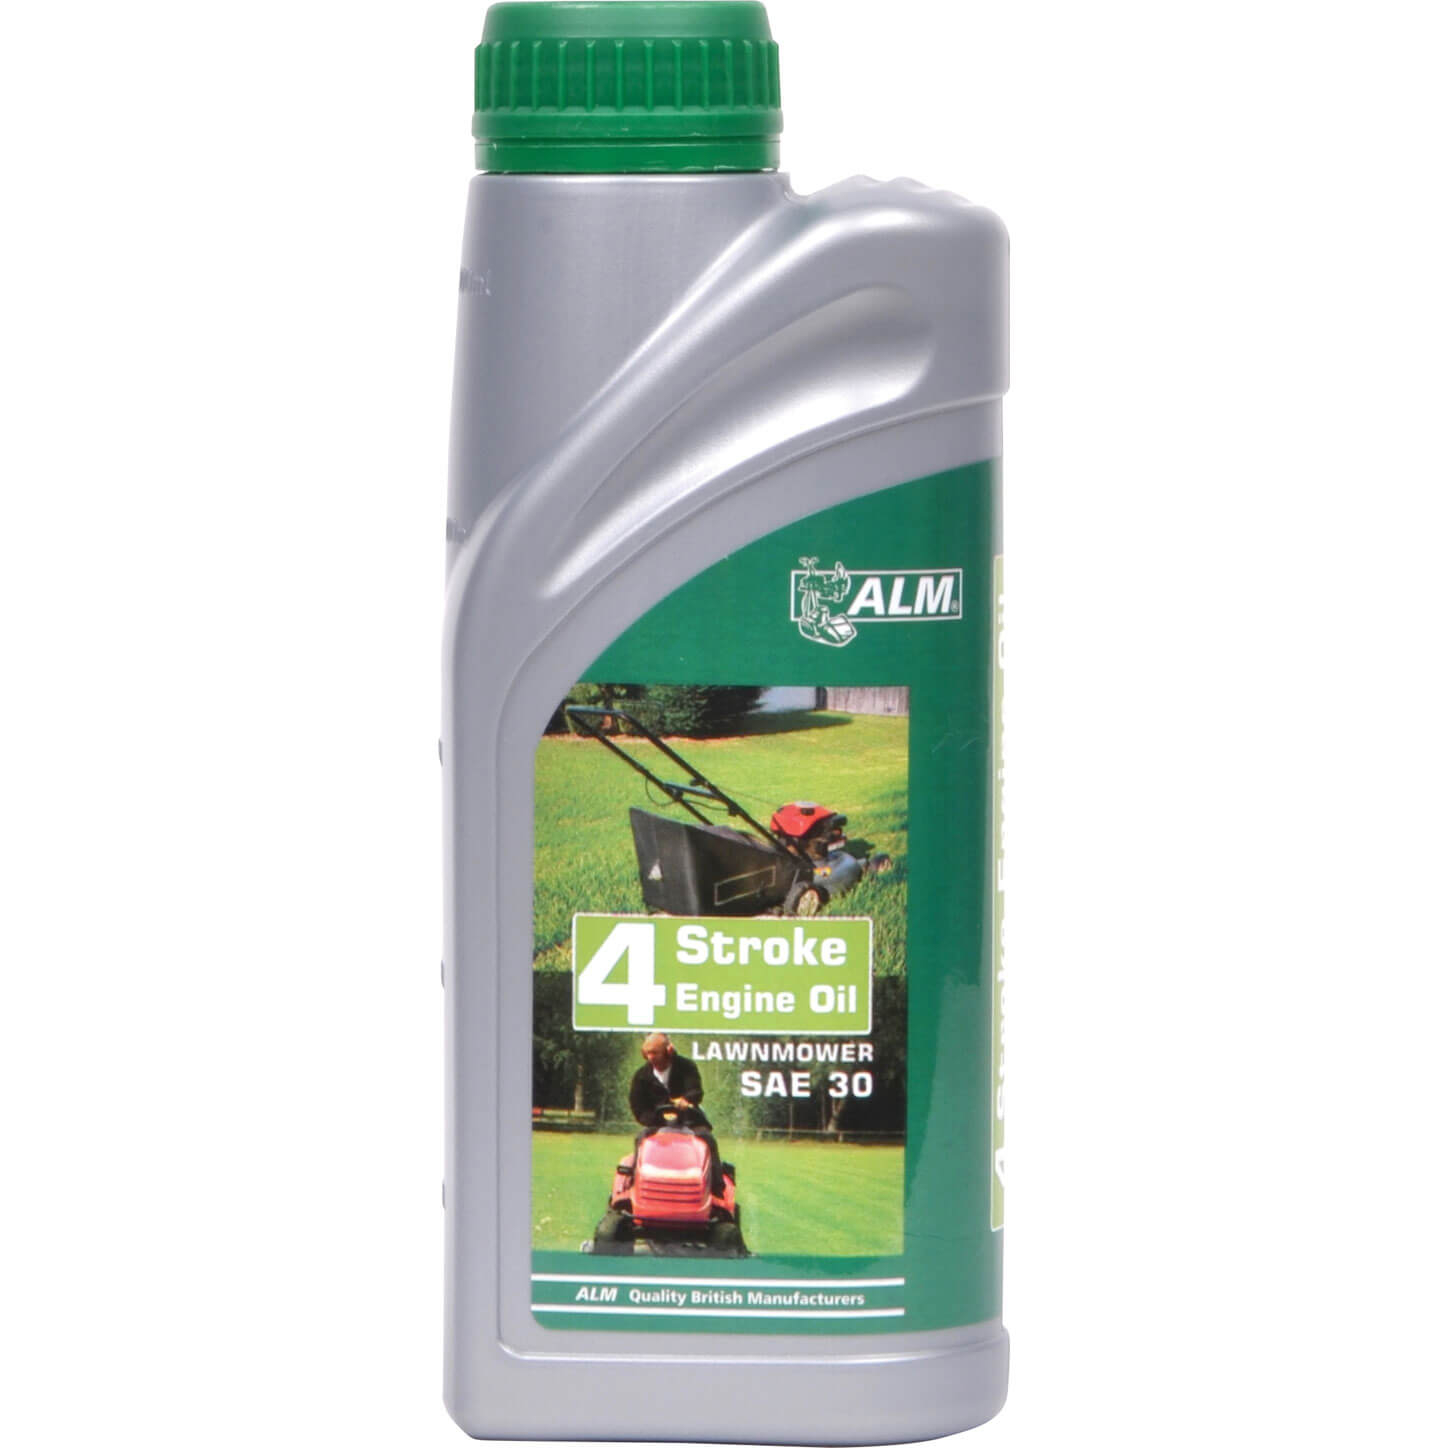 Image of 4 Stroke Oil for Garden Tools & Lawnmowers 500ml